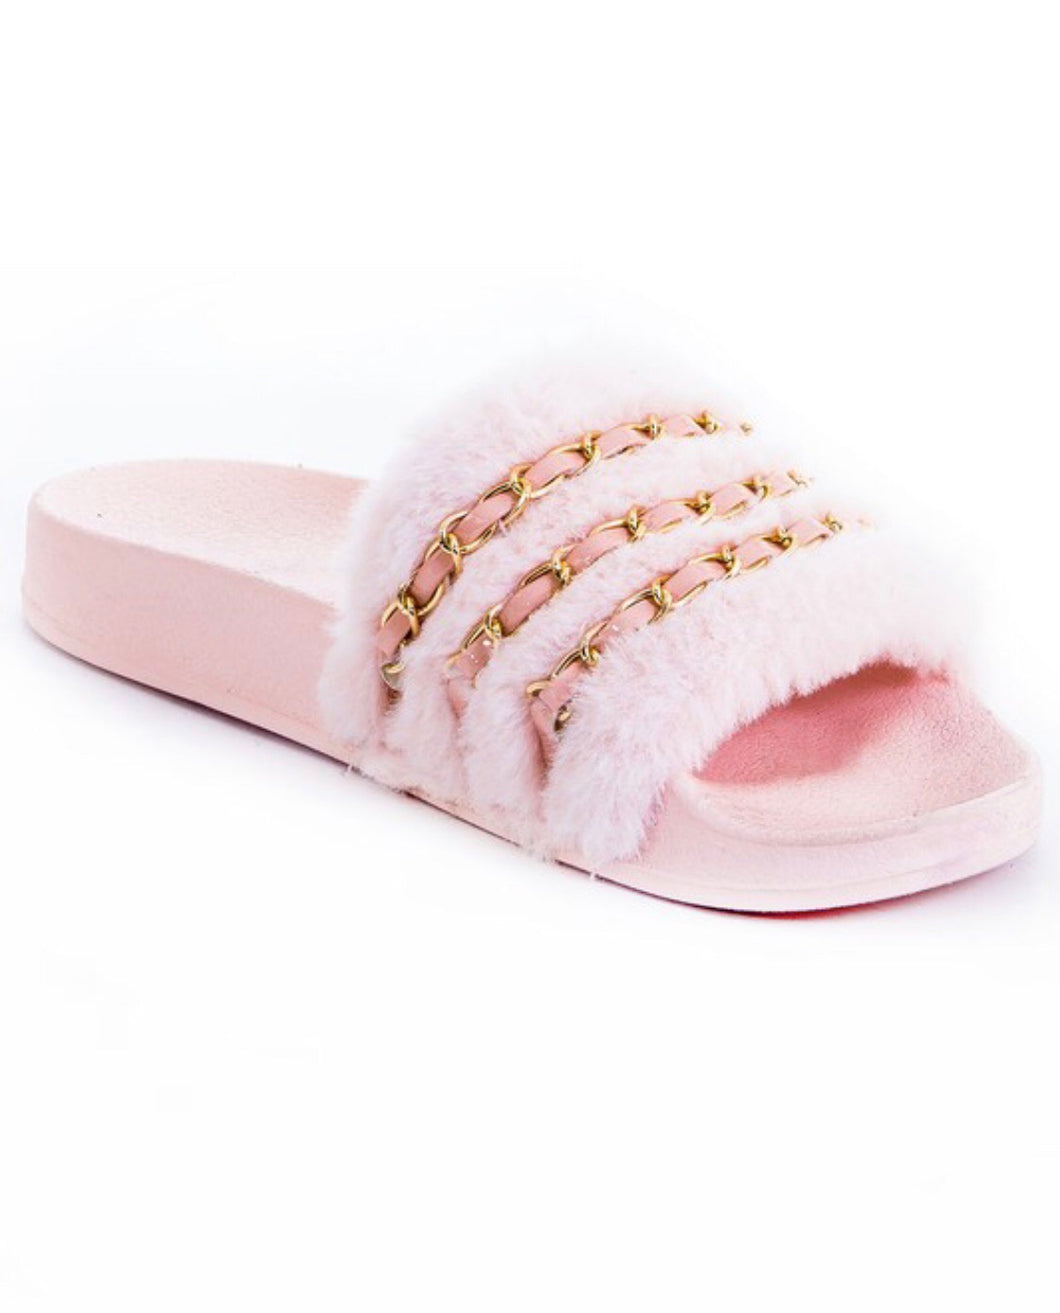 Chain slippers